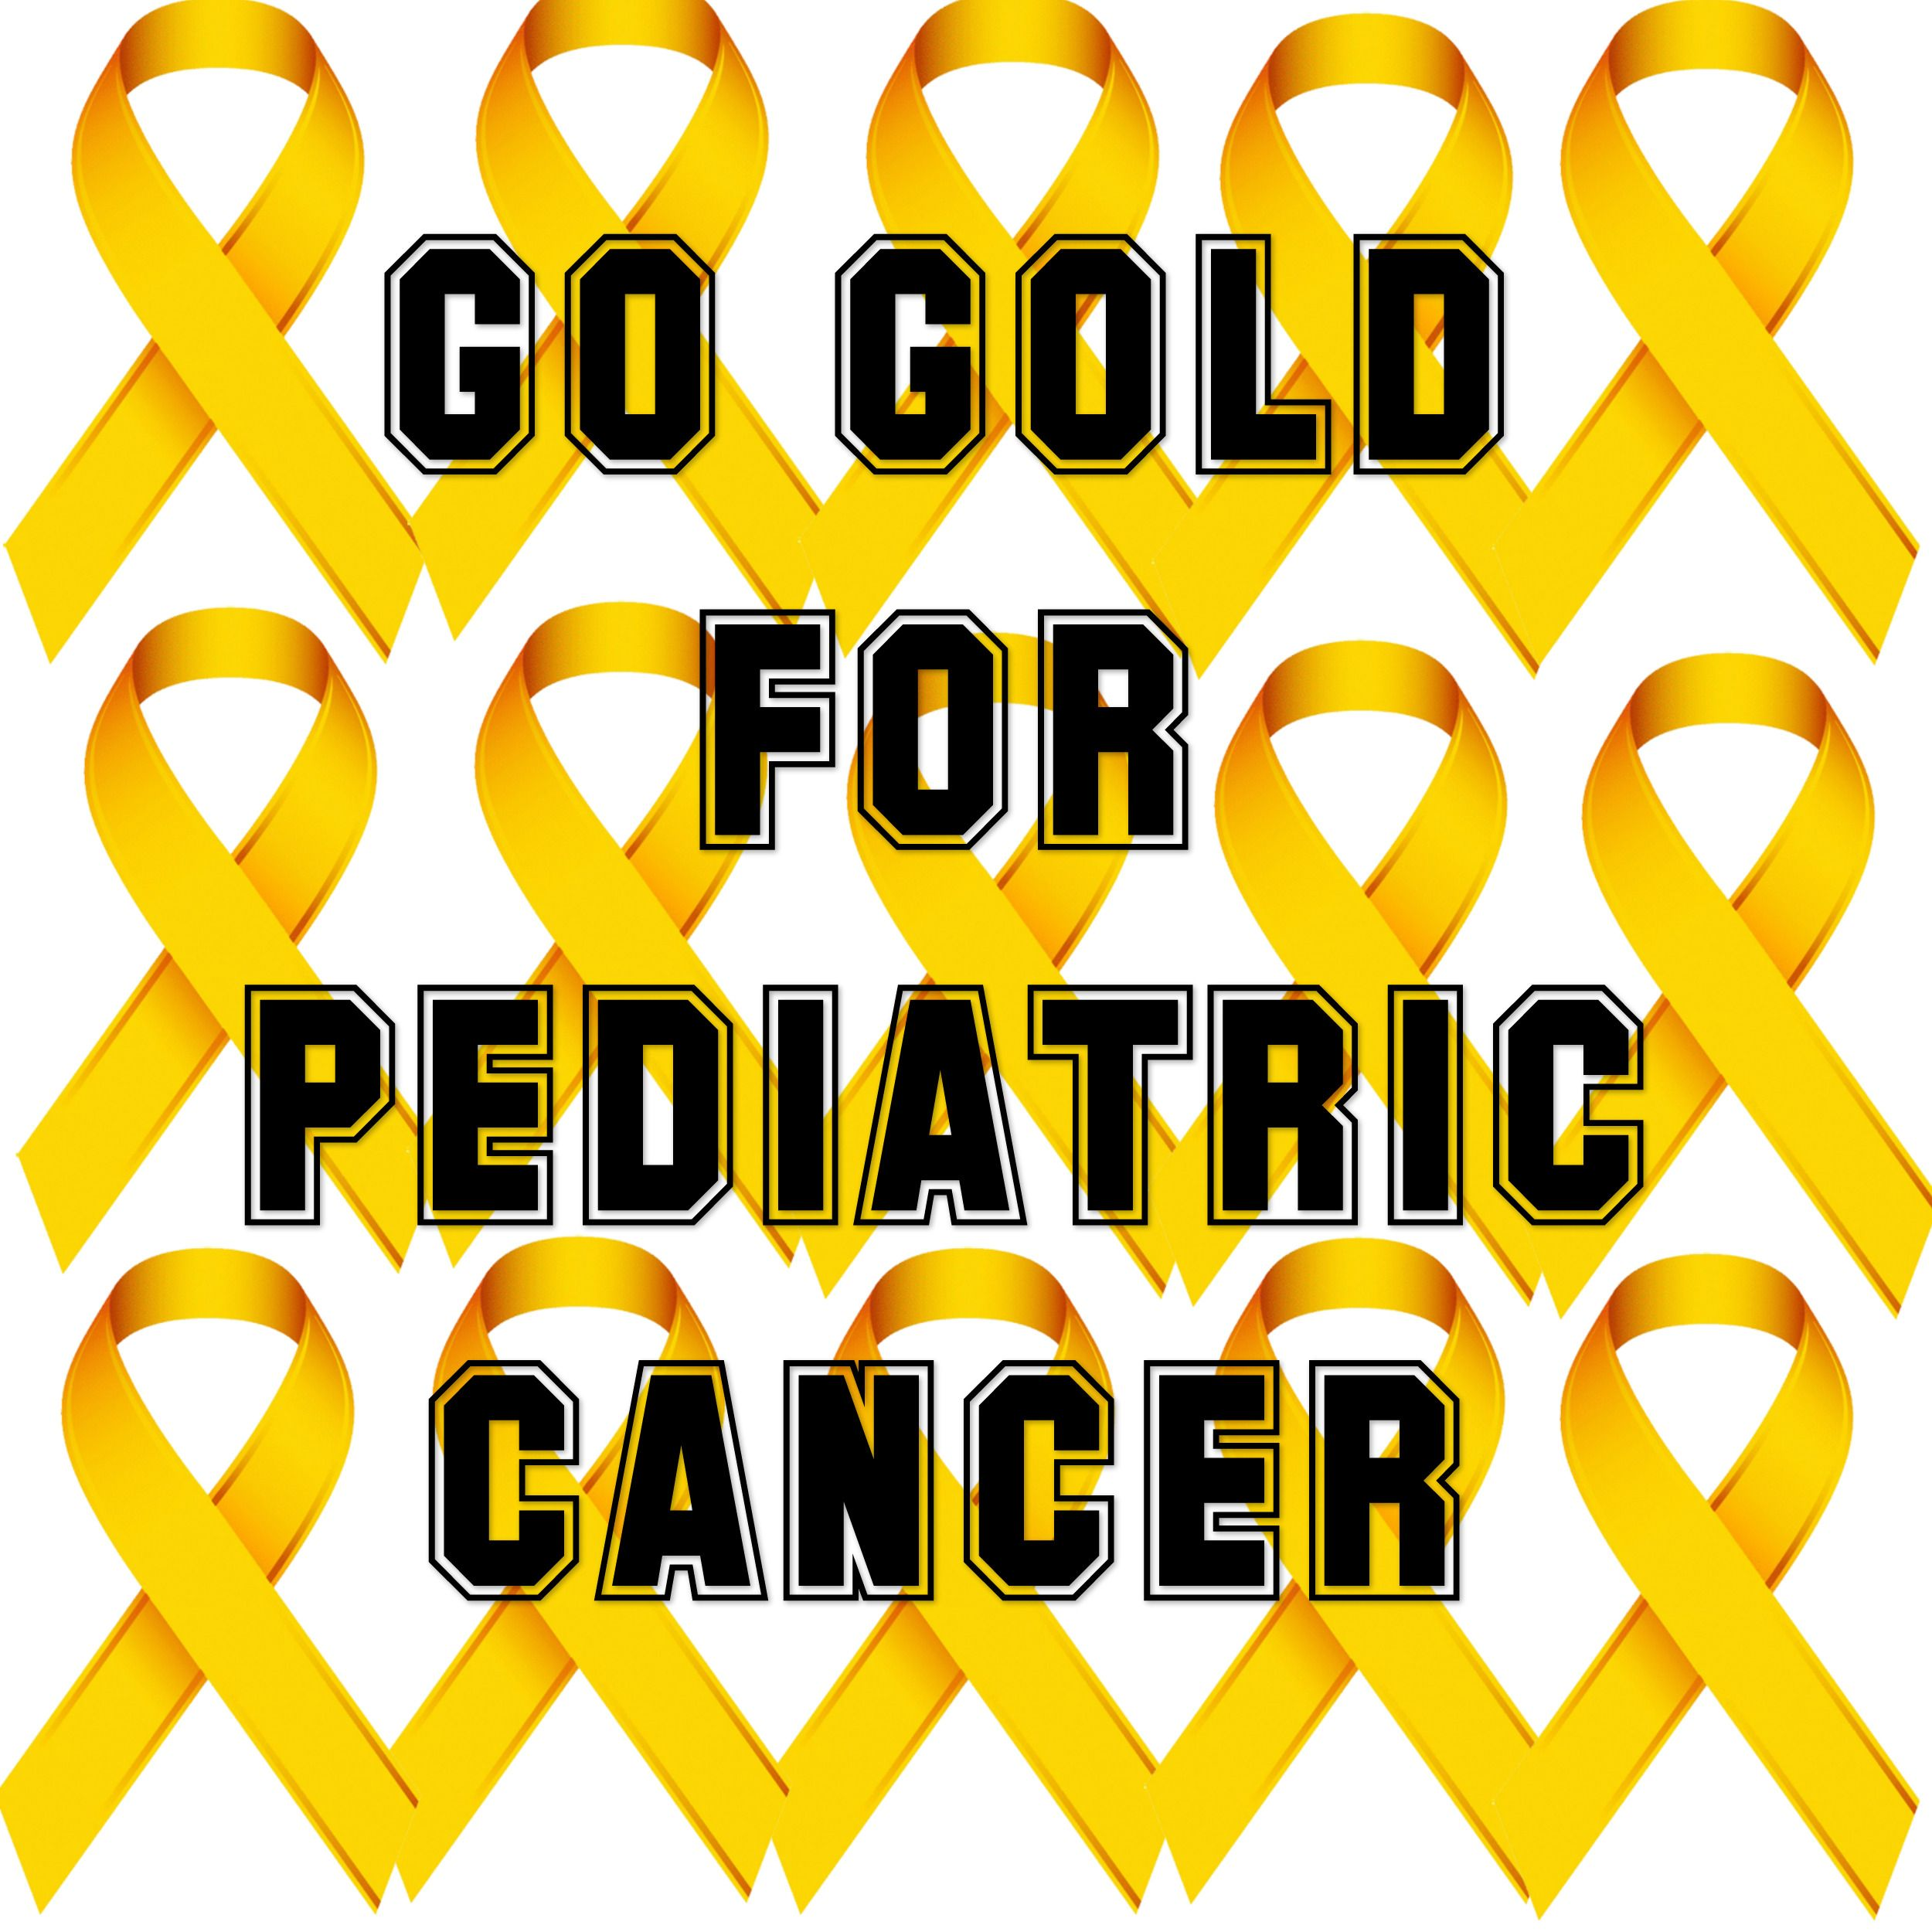 The Gold Ribbon Is A Symbol For Pediatric Cancer So Gogold All